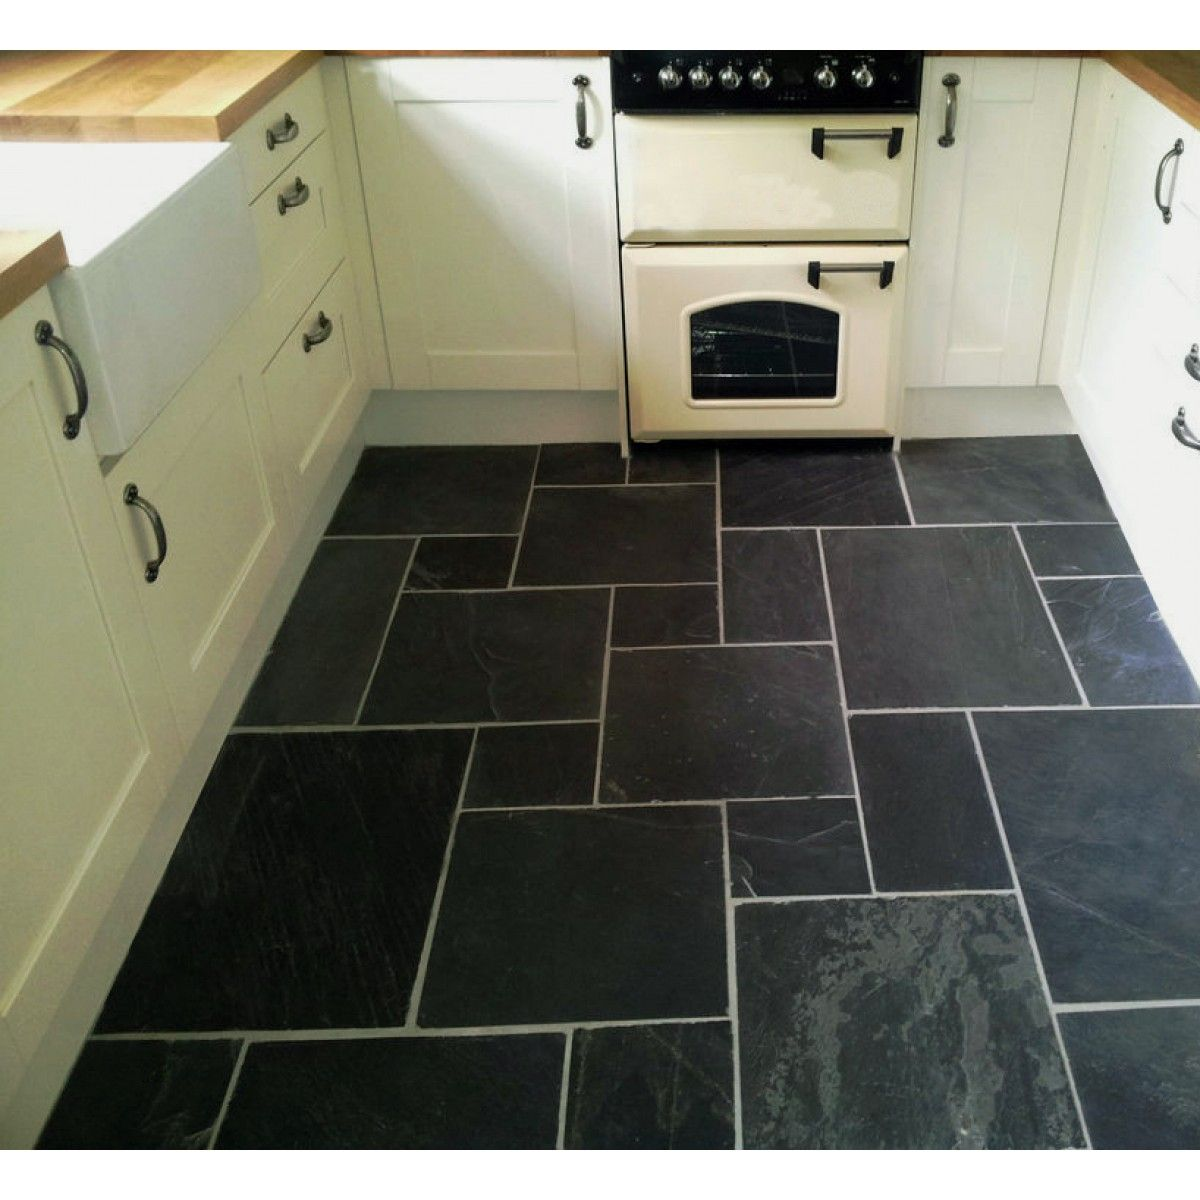 Crown tiles chima black slate combination floor tiles crown crown tiles chima black slate combination floor tiles crown tiles dailygadgetfo Image collections